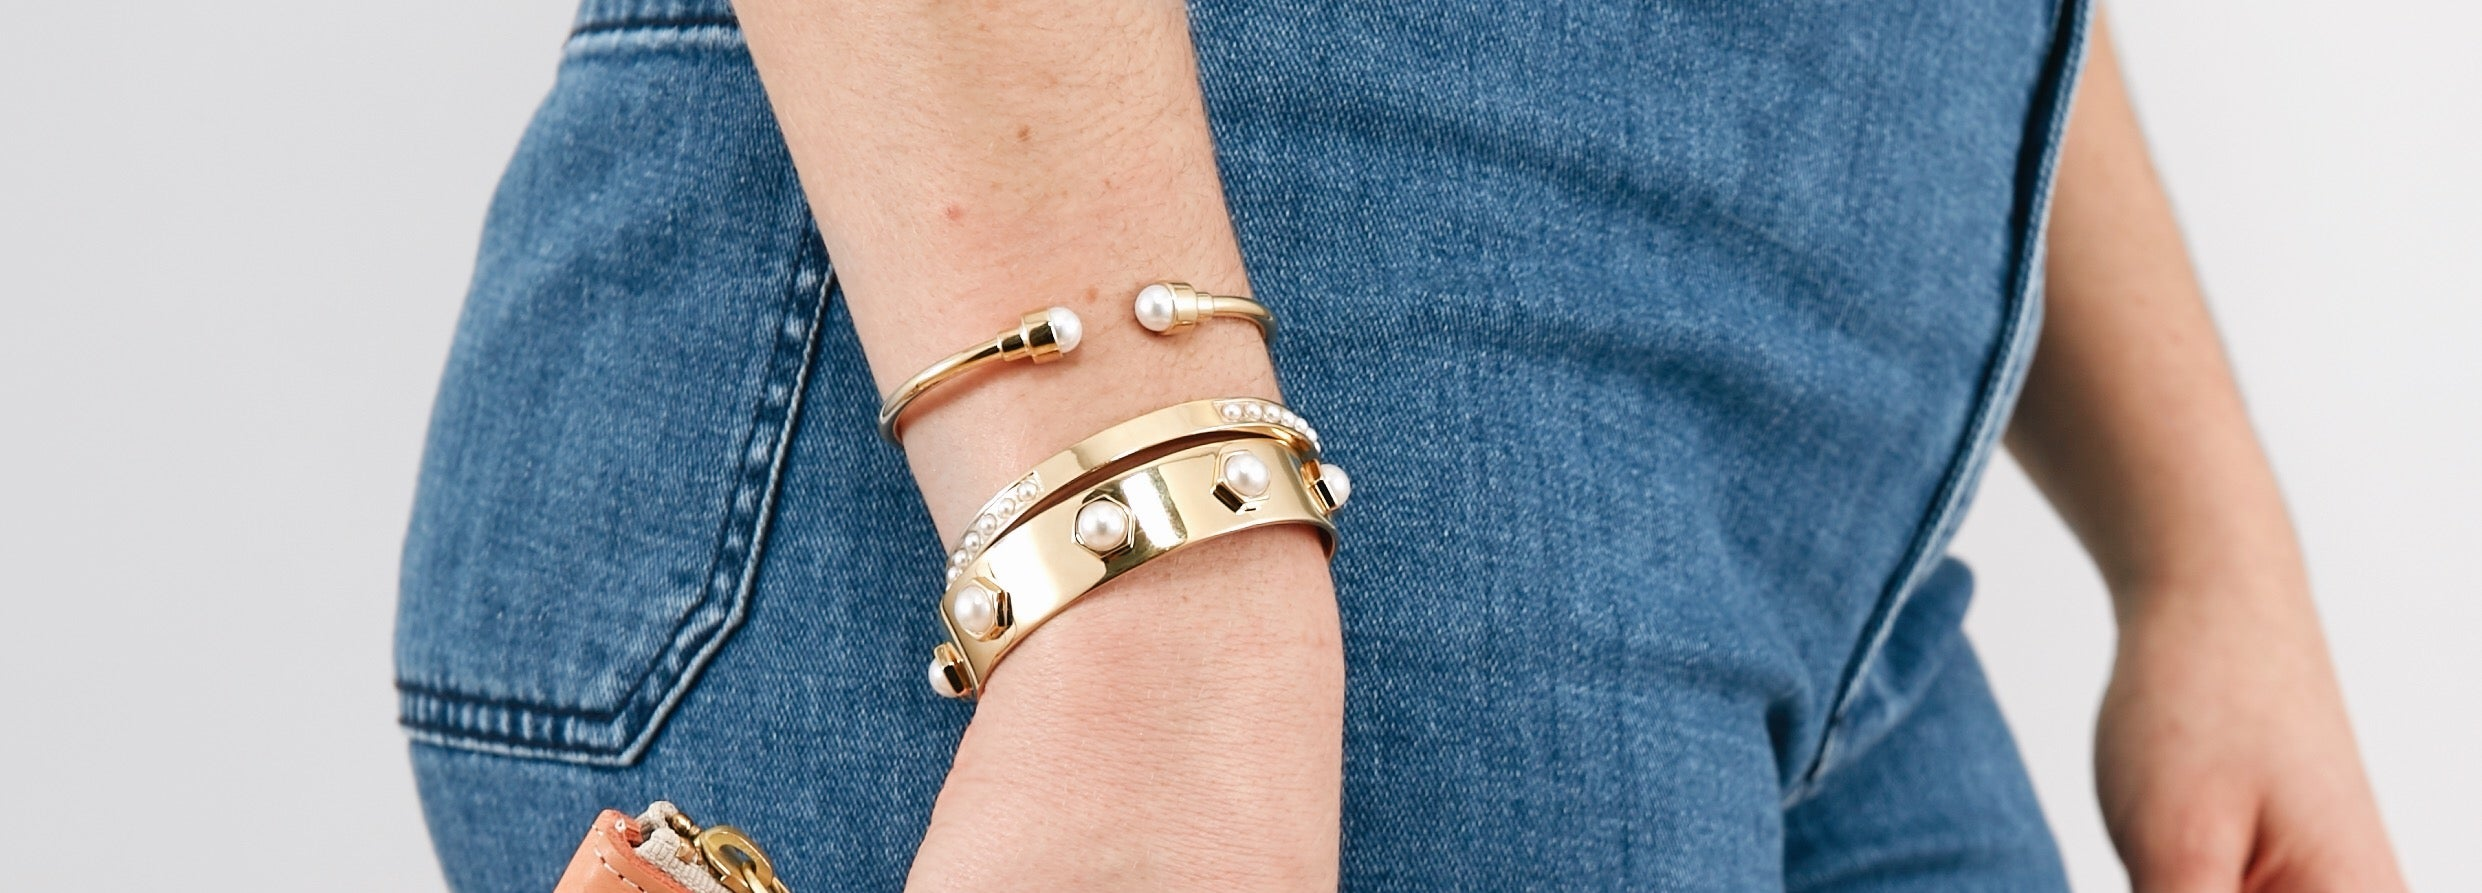 All About Cuff Bracelets